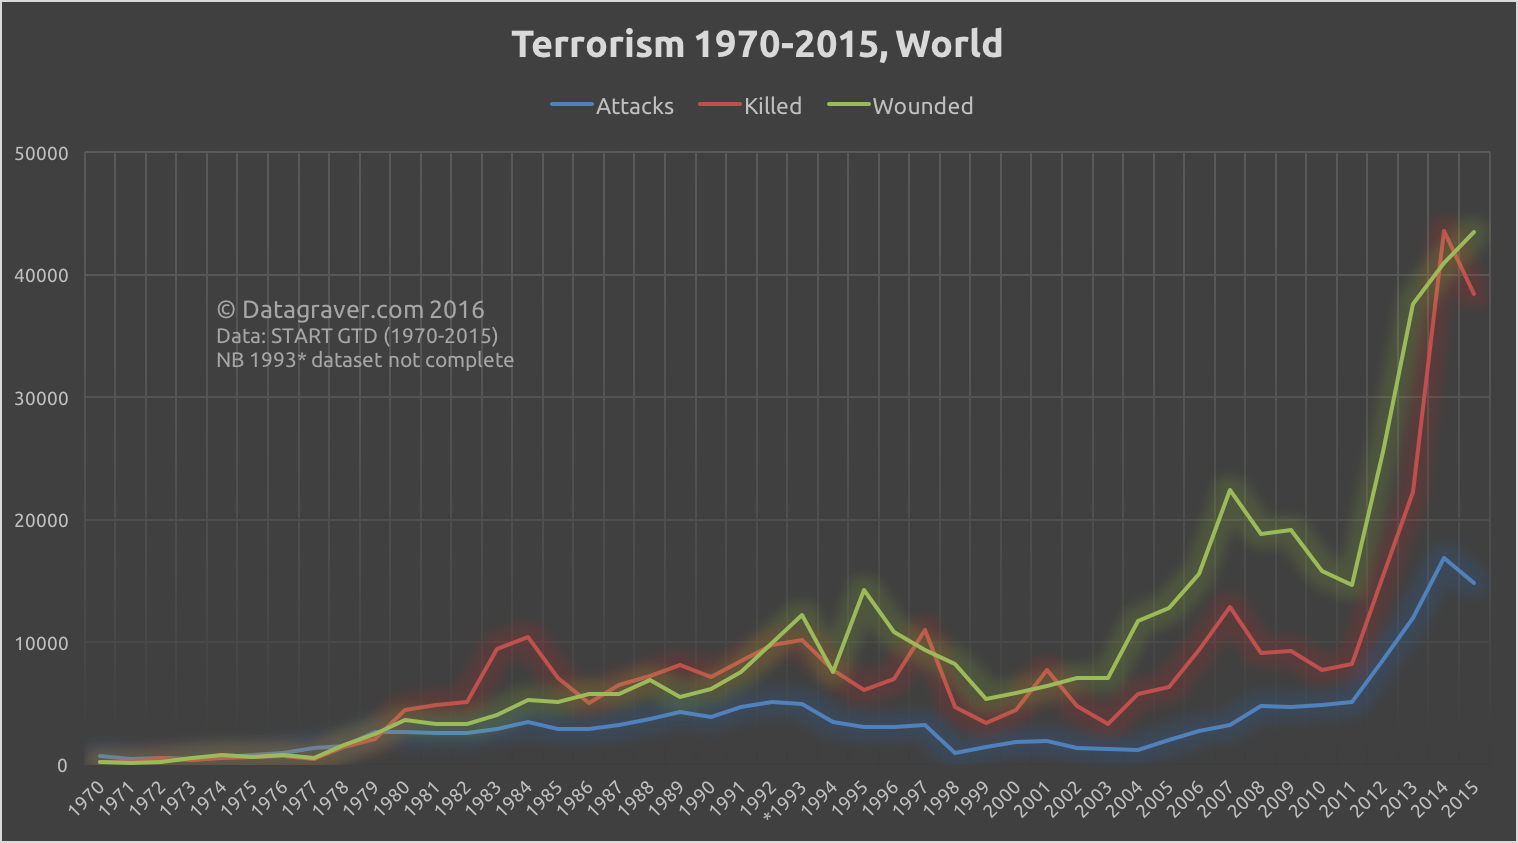 terrorism and the world It has been argued that terrorism should not have a large effect on economic activity, because terrorist attacks destroy only a small fraction of the stock of capital of a country (see, eg, becker, g, murphy, k, 2001.